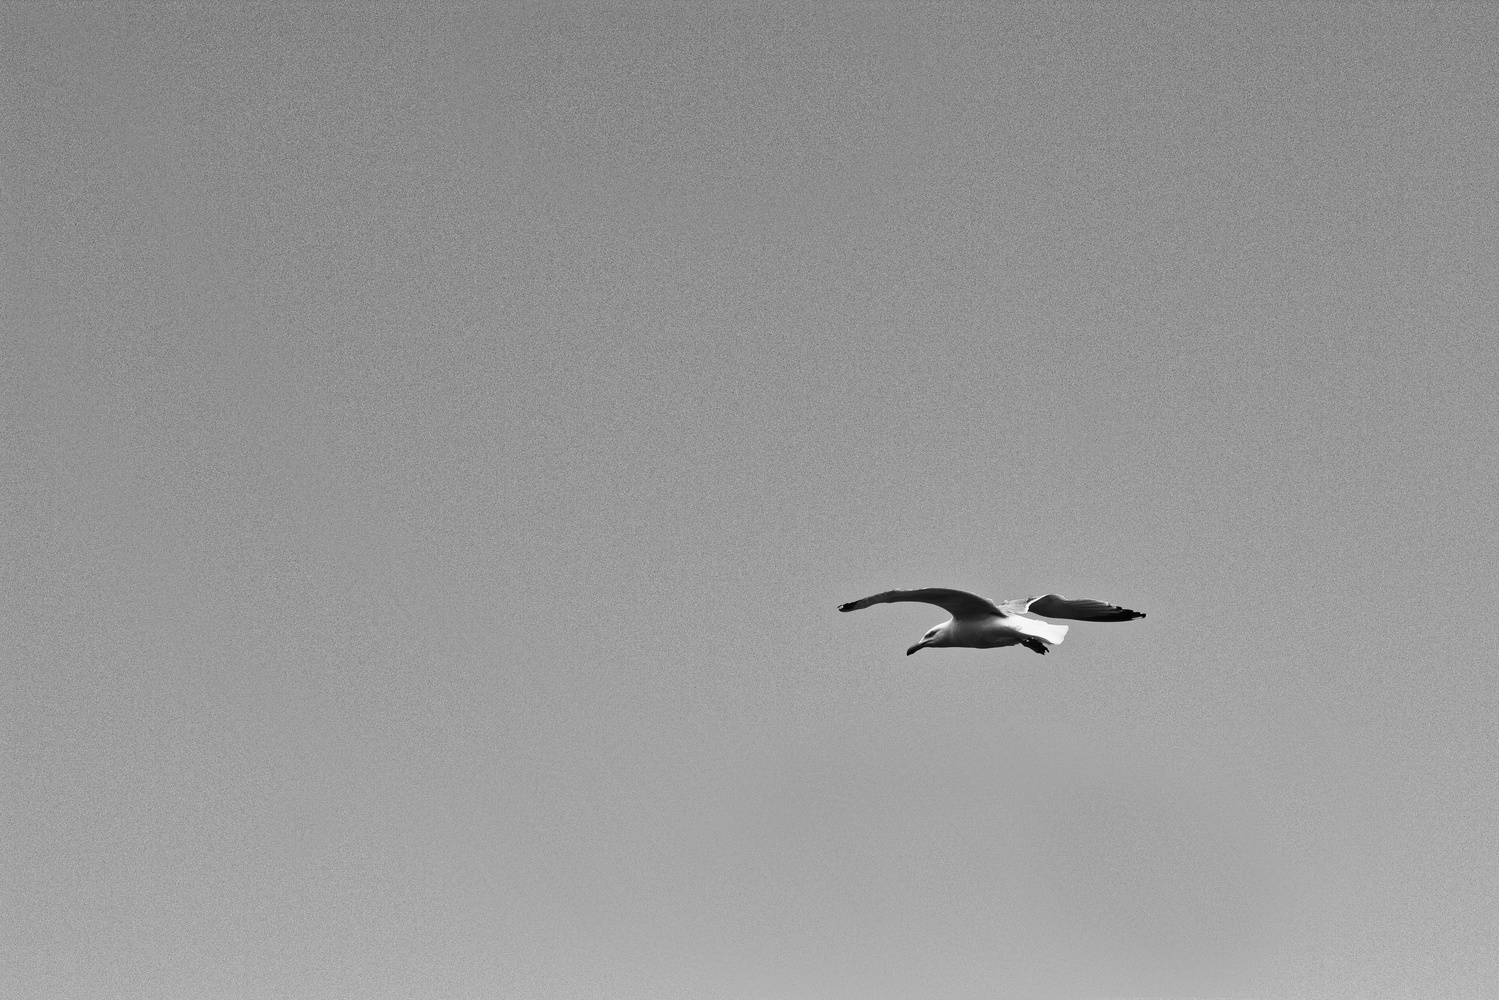 Solo Gull by Mike Young